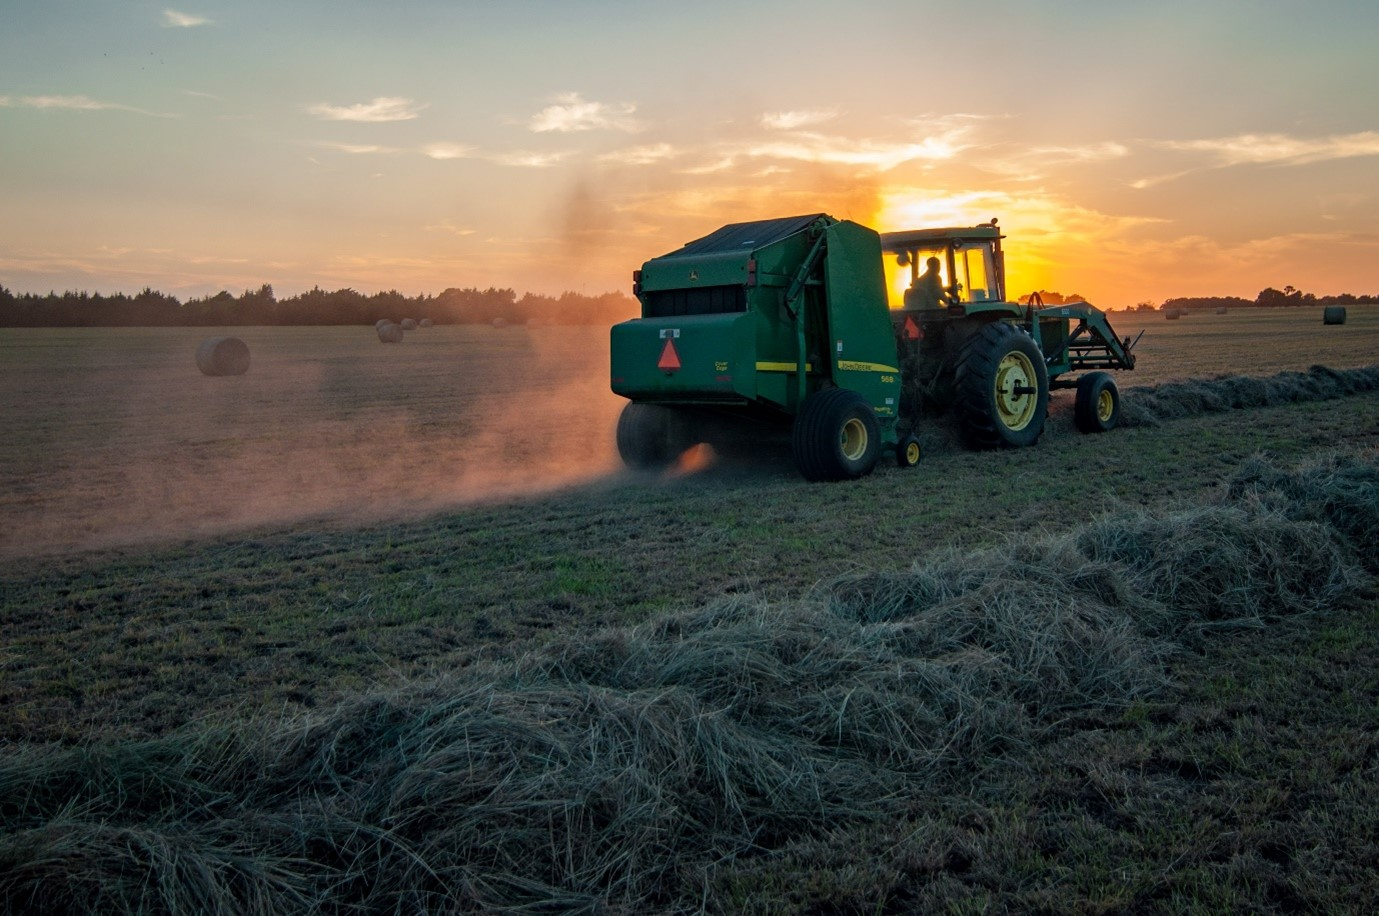 Action is needed to improve safer tractor driving practices says New Zealand's leading Rural Consultants for AgSafe New Zealand Ltd.